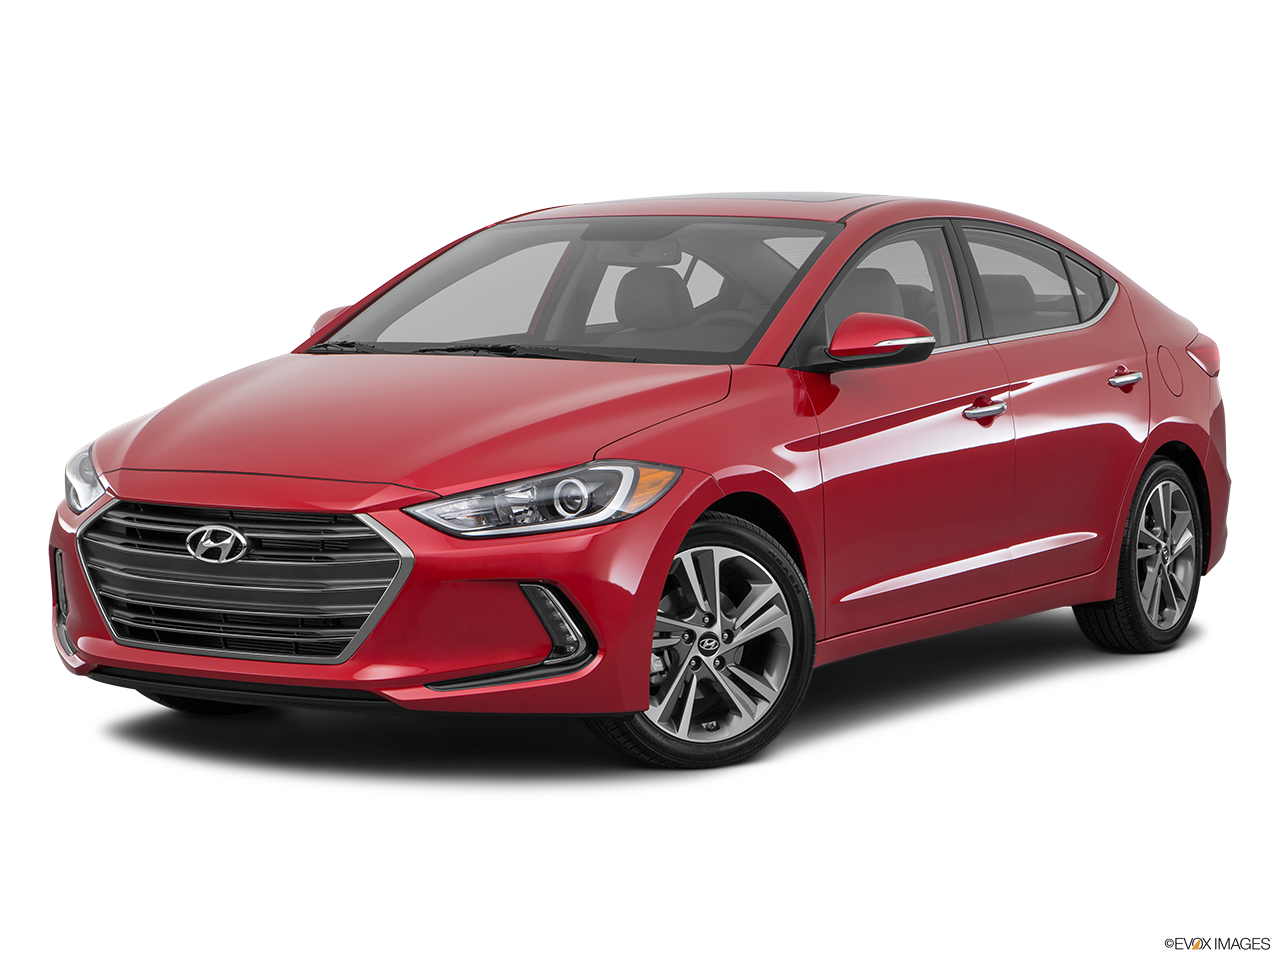 Test Drive A 2017 Hyundai Elantra at Premier Hyundai in Tracy